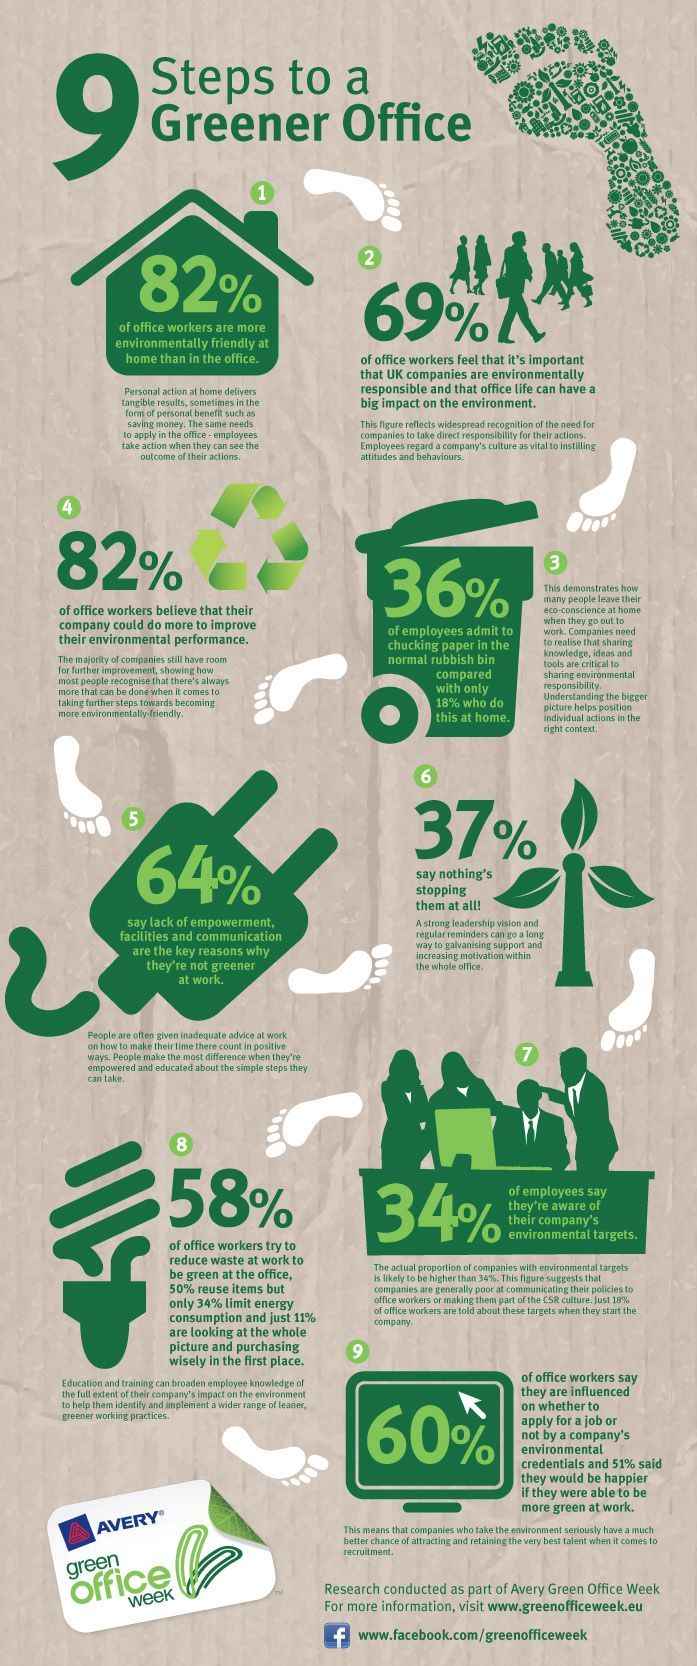 9 Steps to a Greener Office, supporting Green Office Week